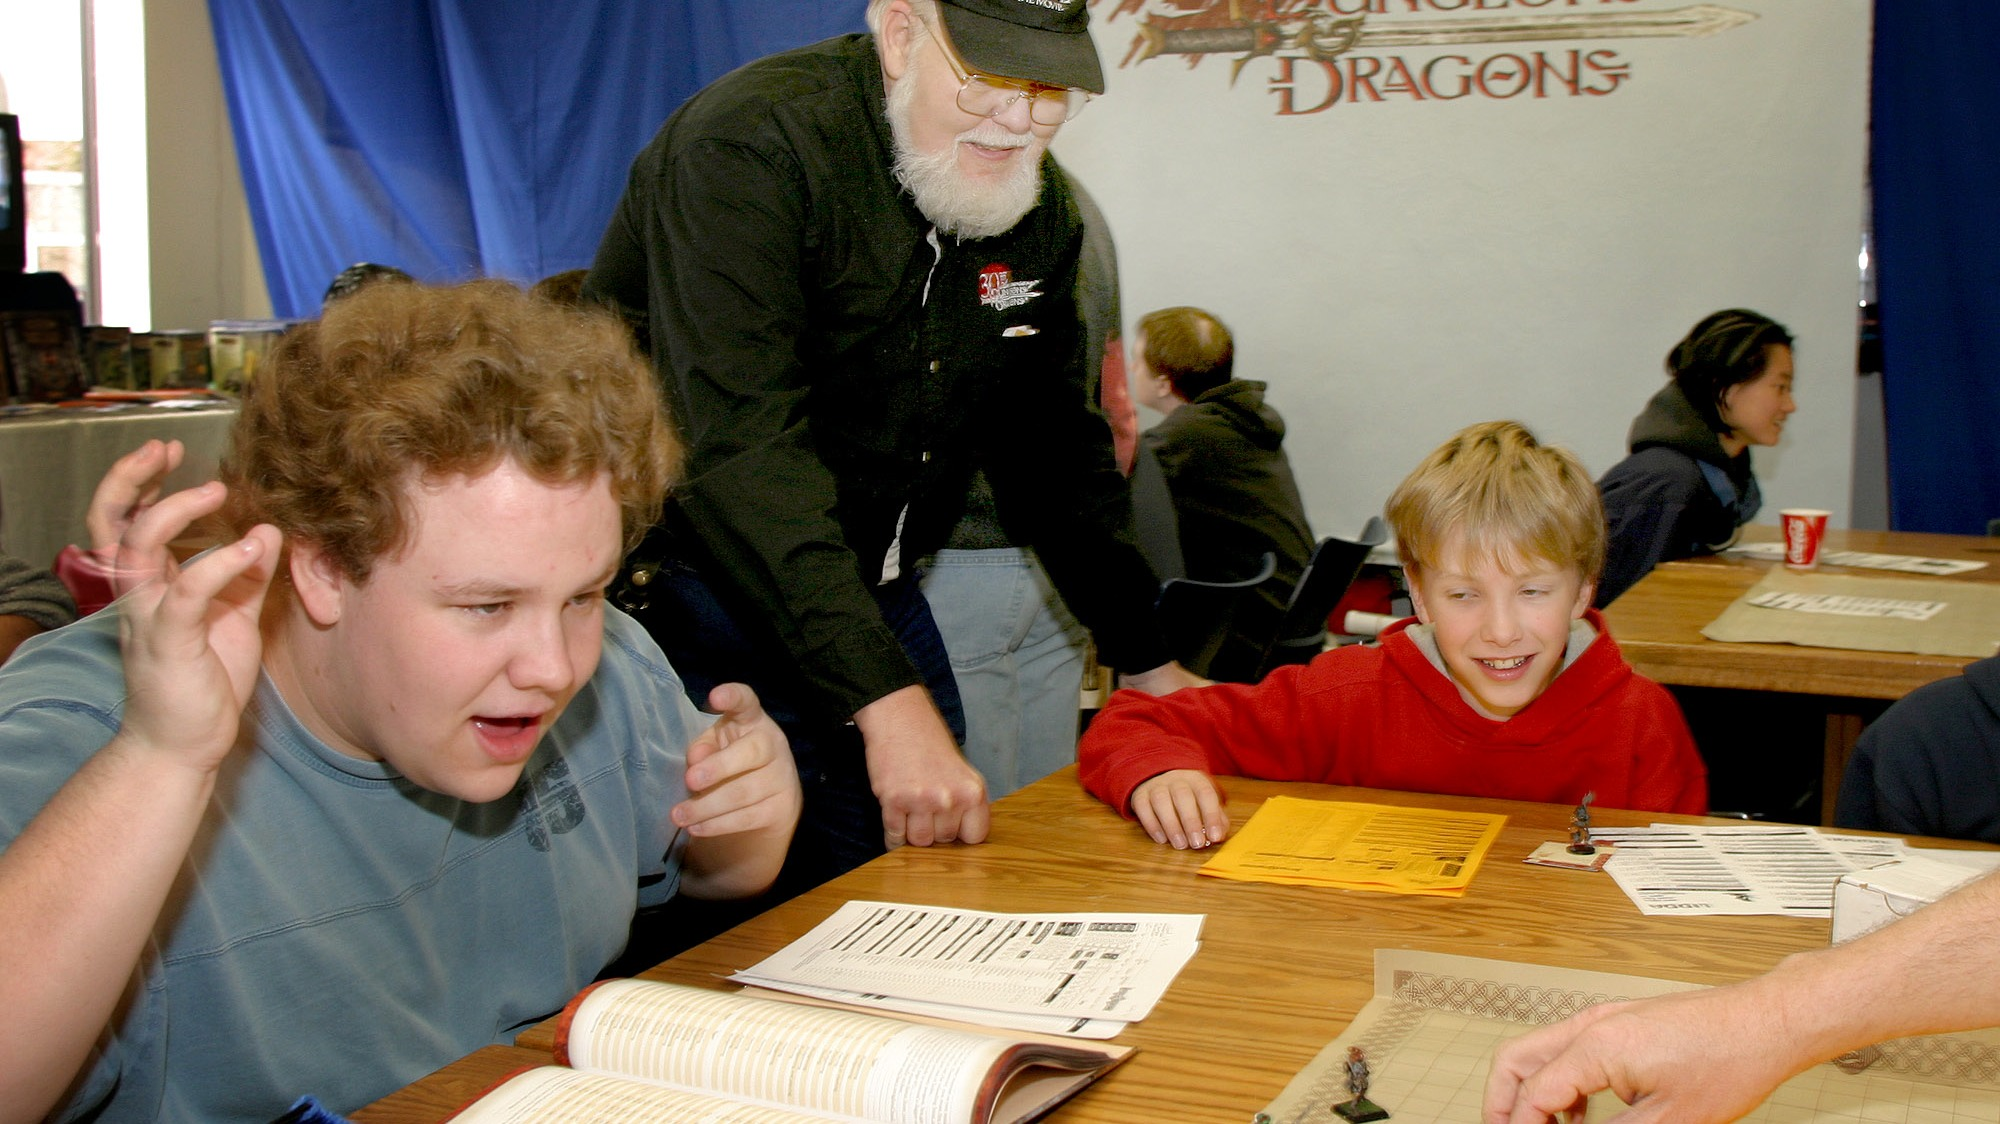 Taylor Babcock, left, reacts after a roll of dice while playing Dungeons & Dragons in Falcon Heights, Minn. with the game's creator Dave Arneson, center, and Alex Mears-Freeman, right,  Saturday  Oct. 16, 2004. The role playing game marked it's 30th anniversary with games played by fans around the world.(AP Photo/Andy King)